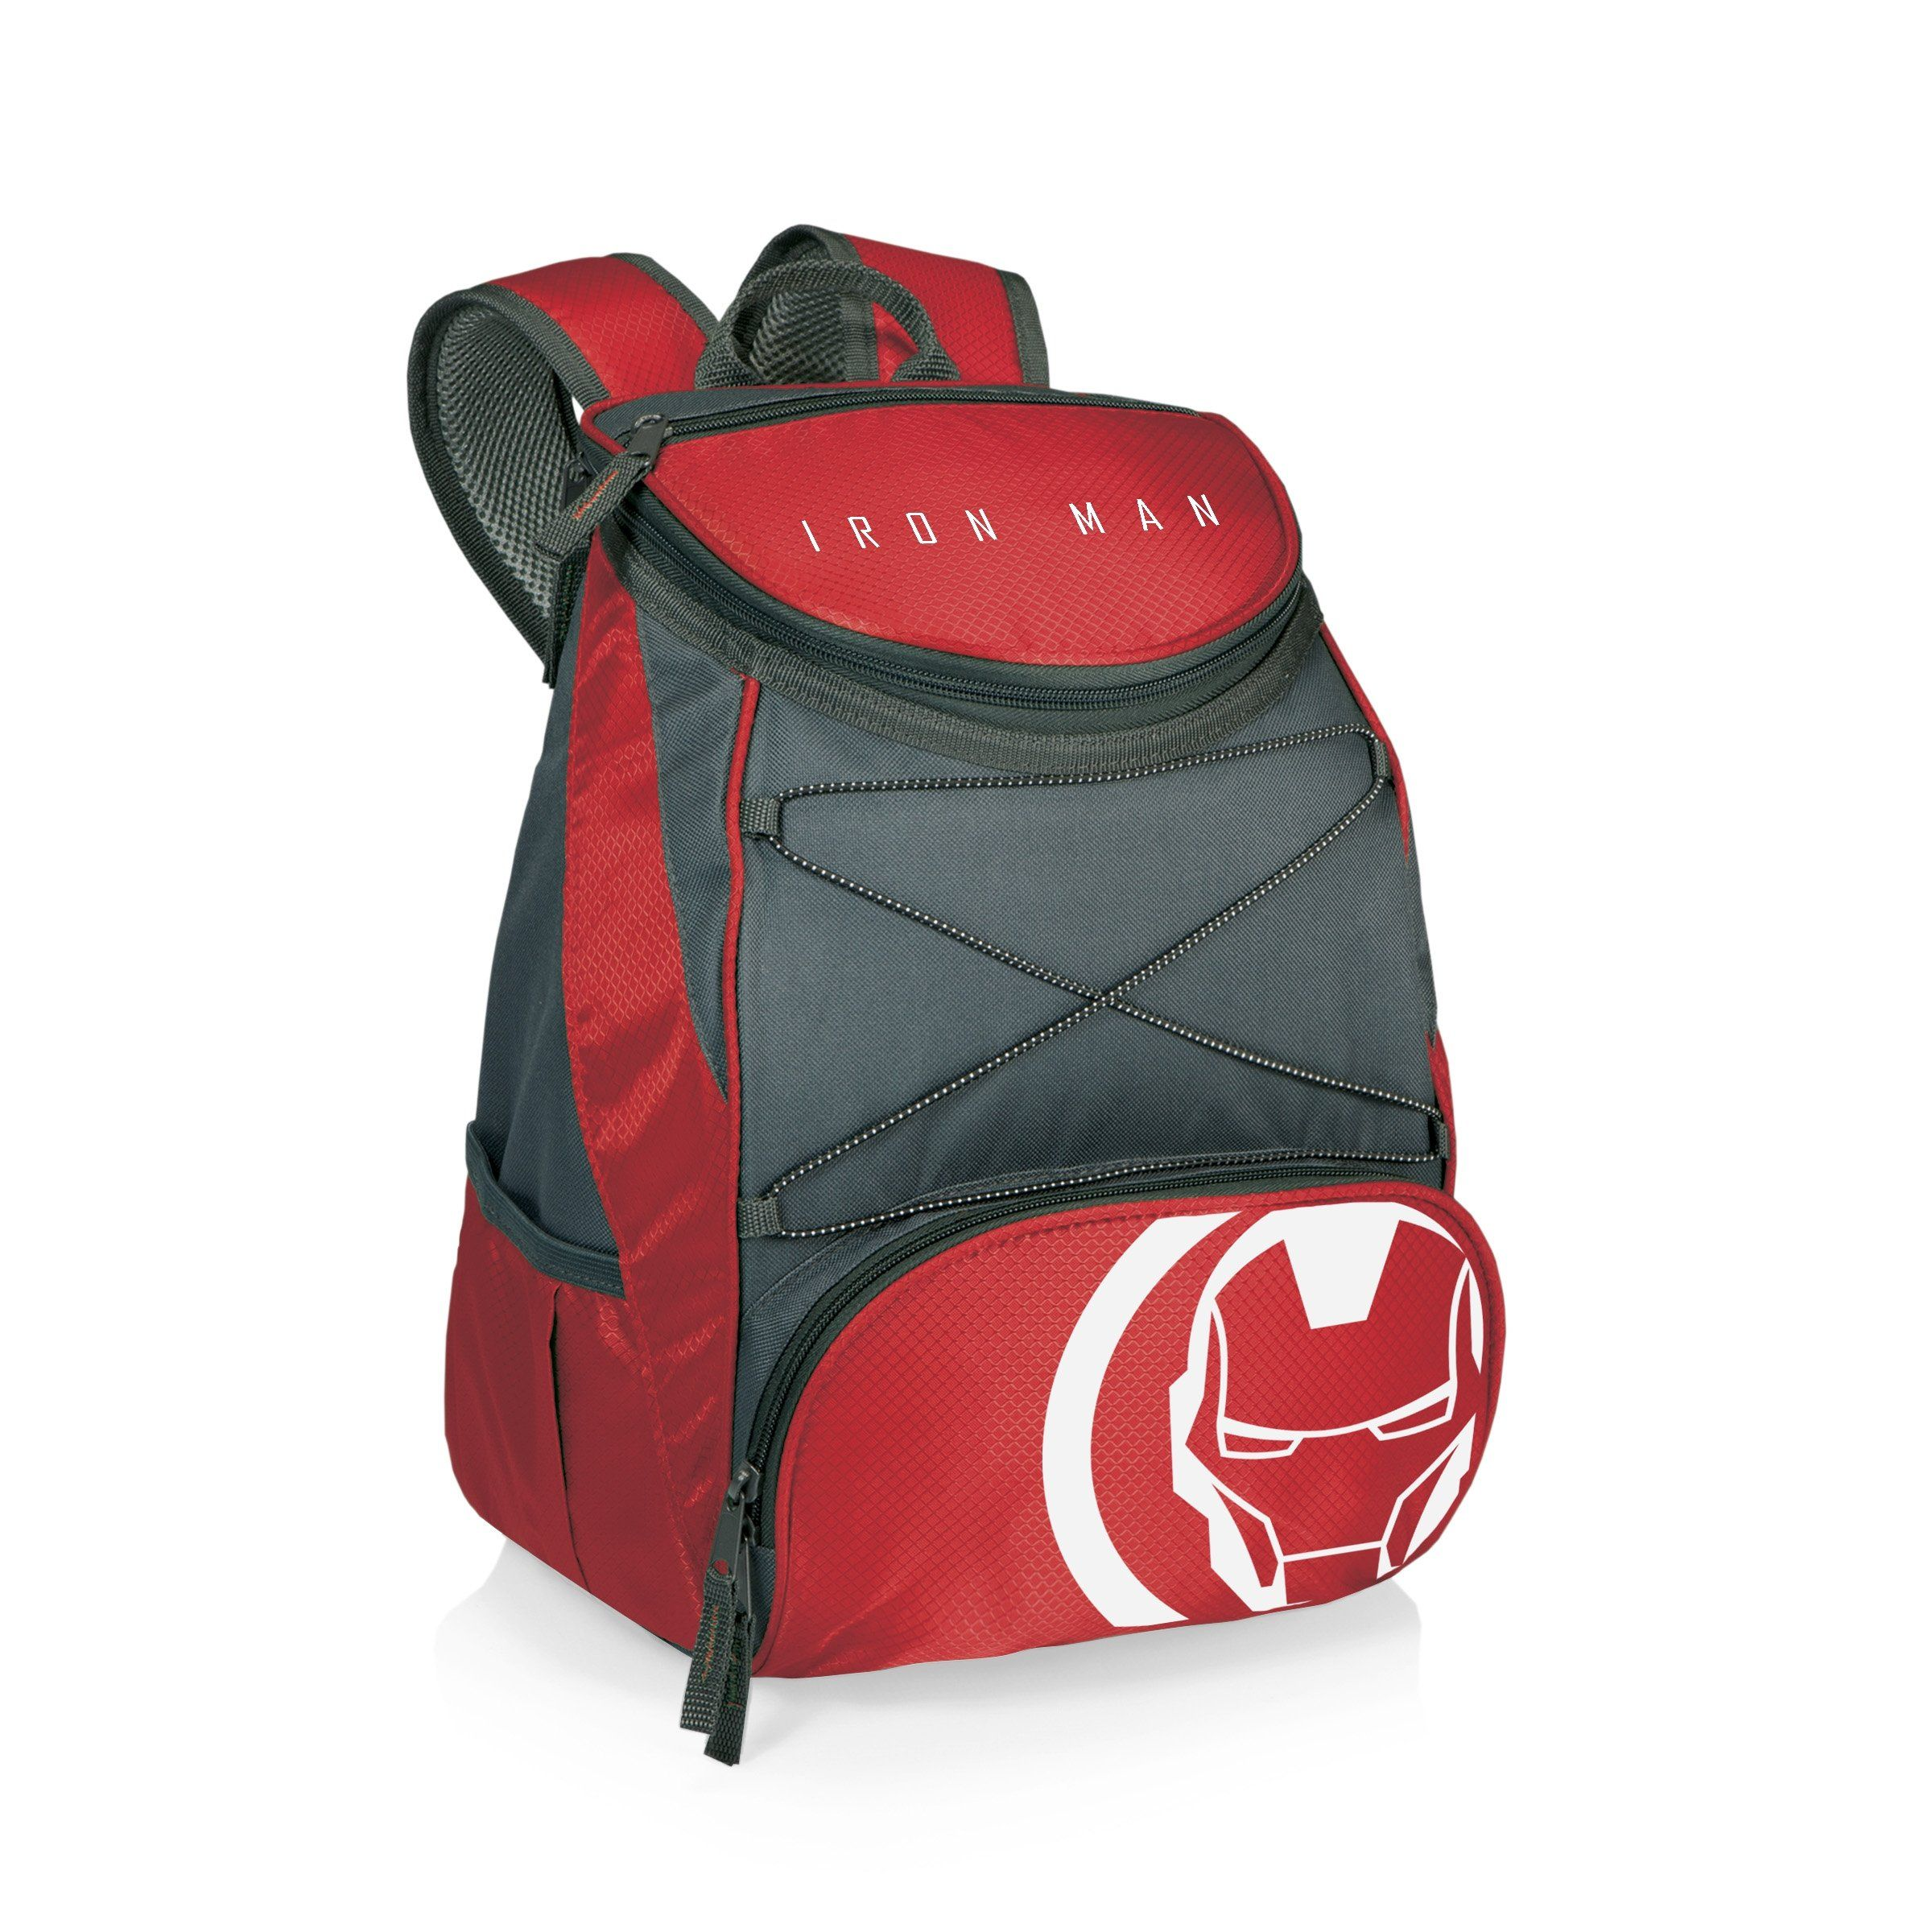 Picnic Time Ironman PTX Cooler Backpack Red Insulated